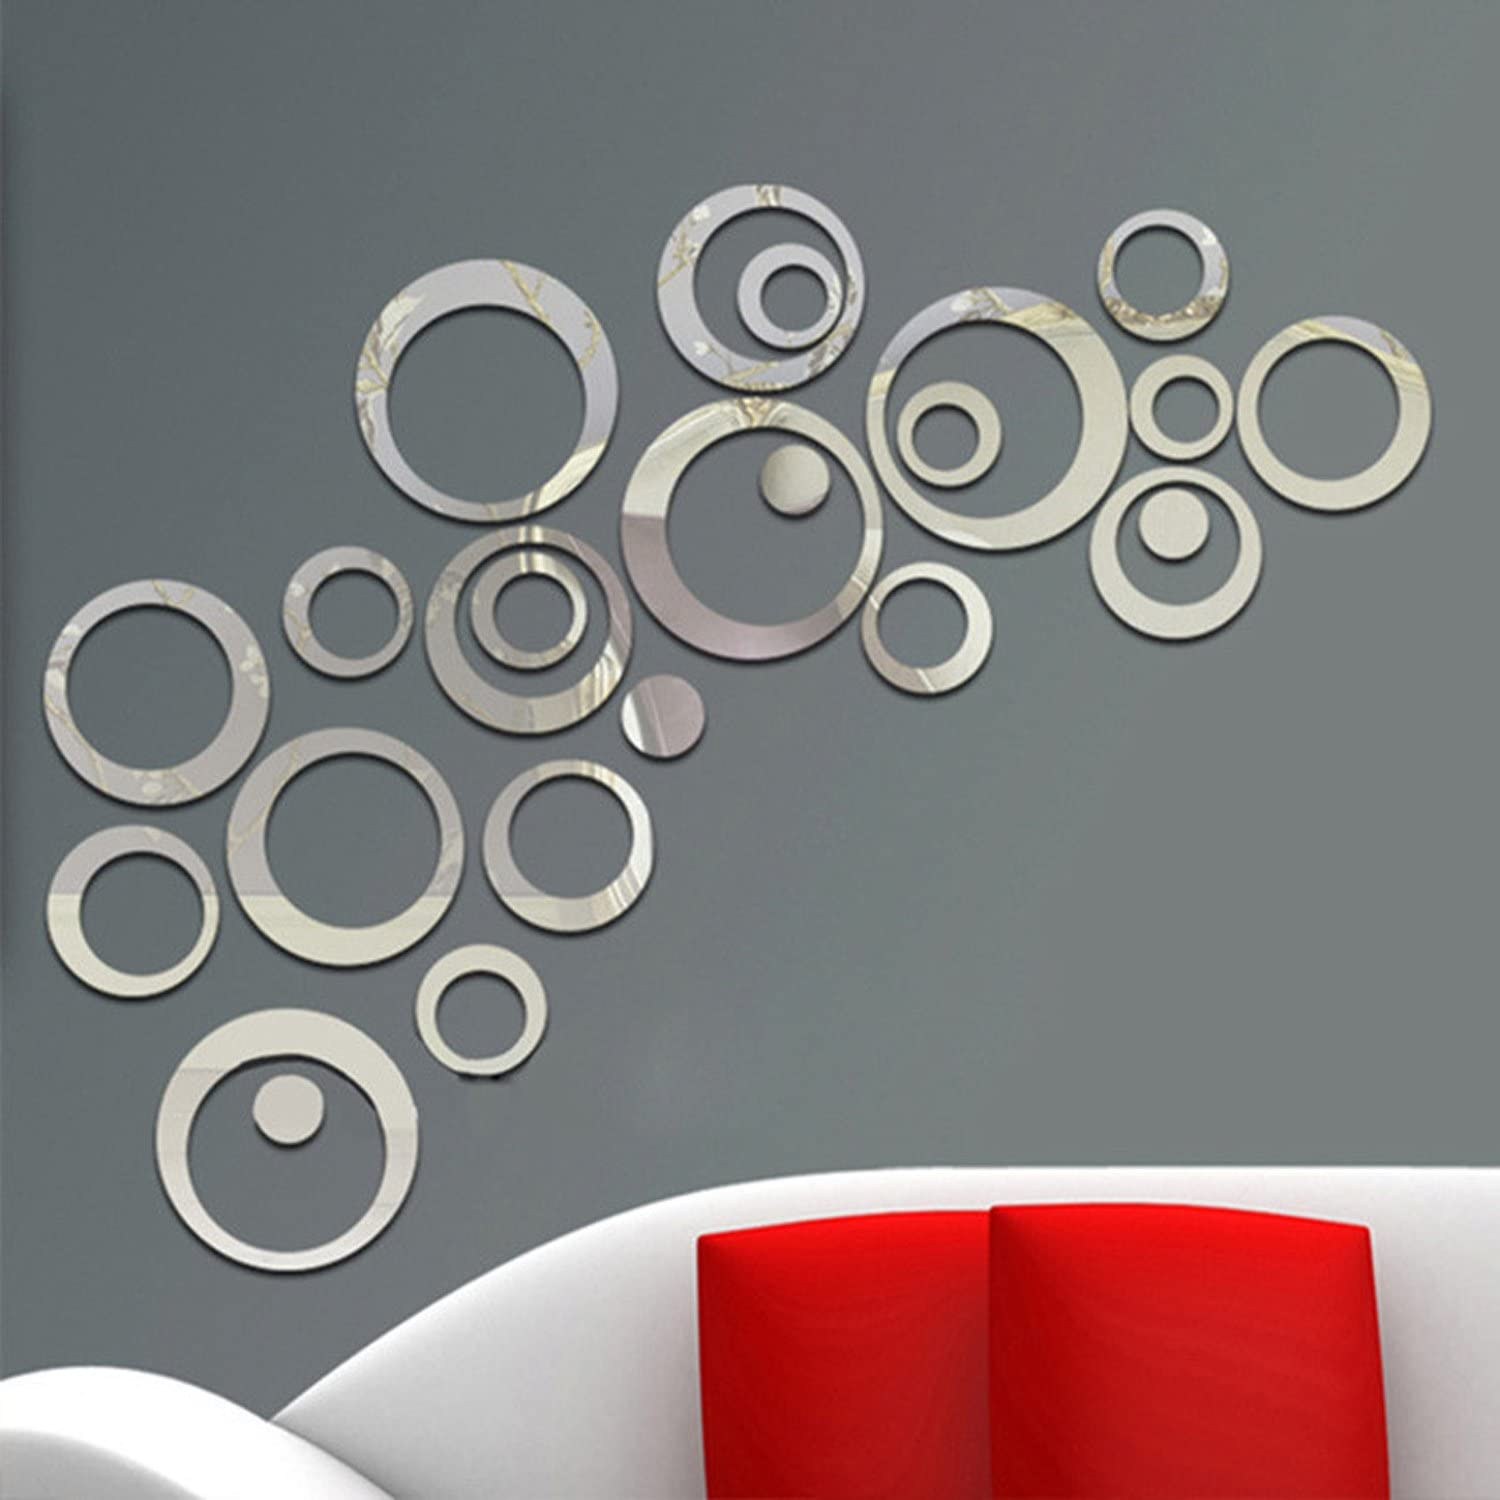 Aooyaoo Circle Mirror Diy Wall Sticker Wall Decoration 24pcs Grey Home Kitchen